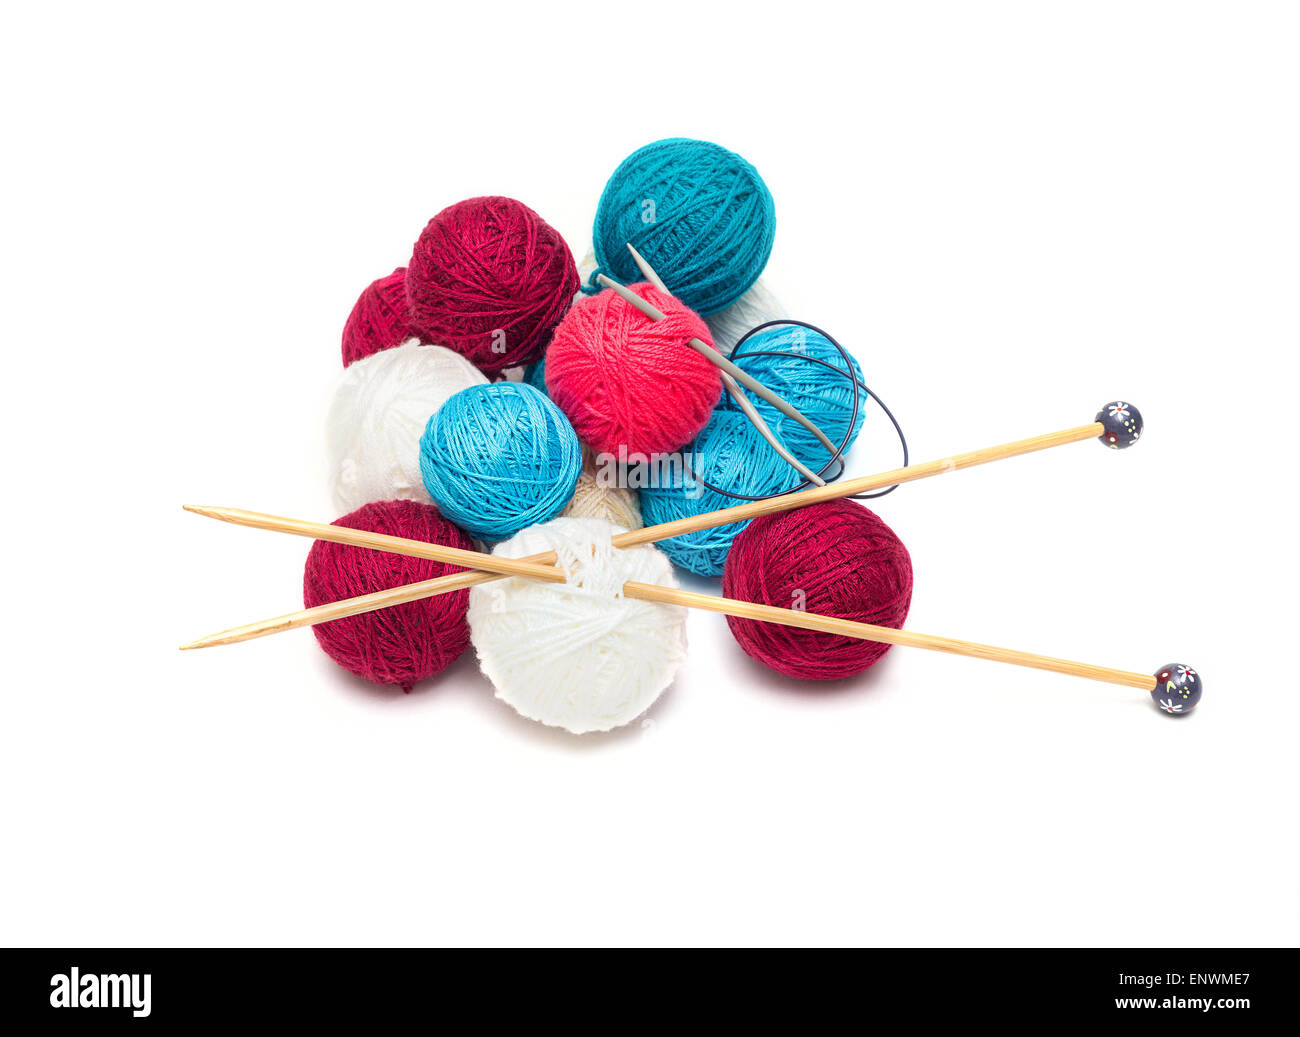 colorful balls of wool with needles - Stock Image